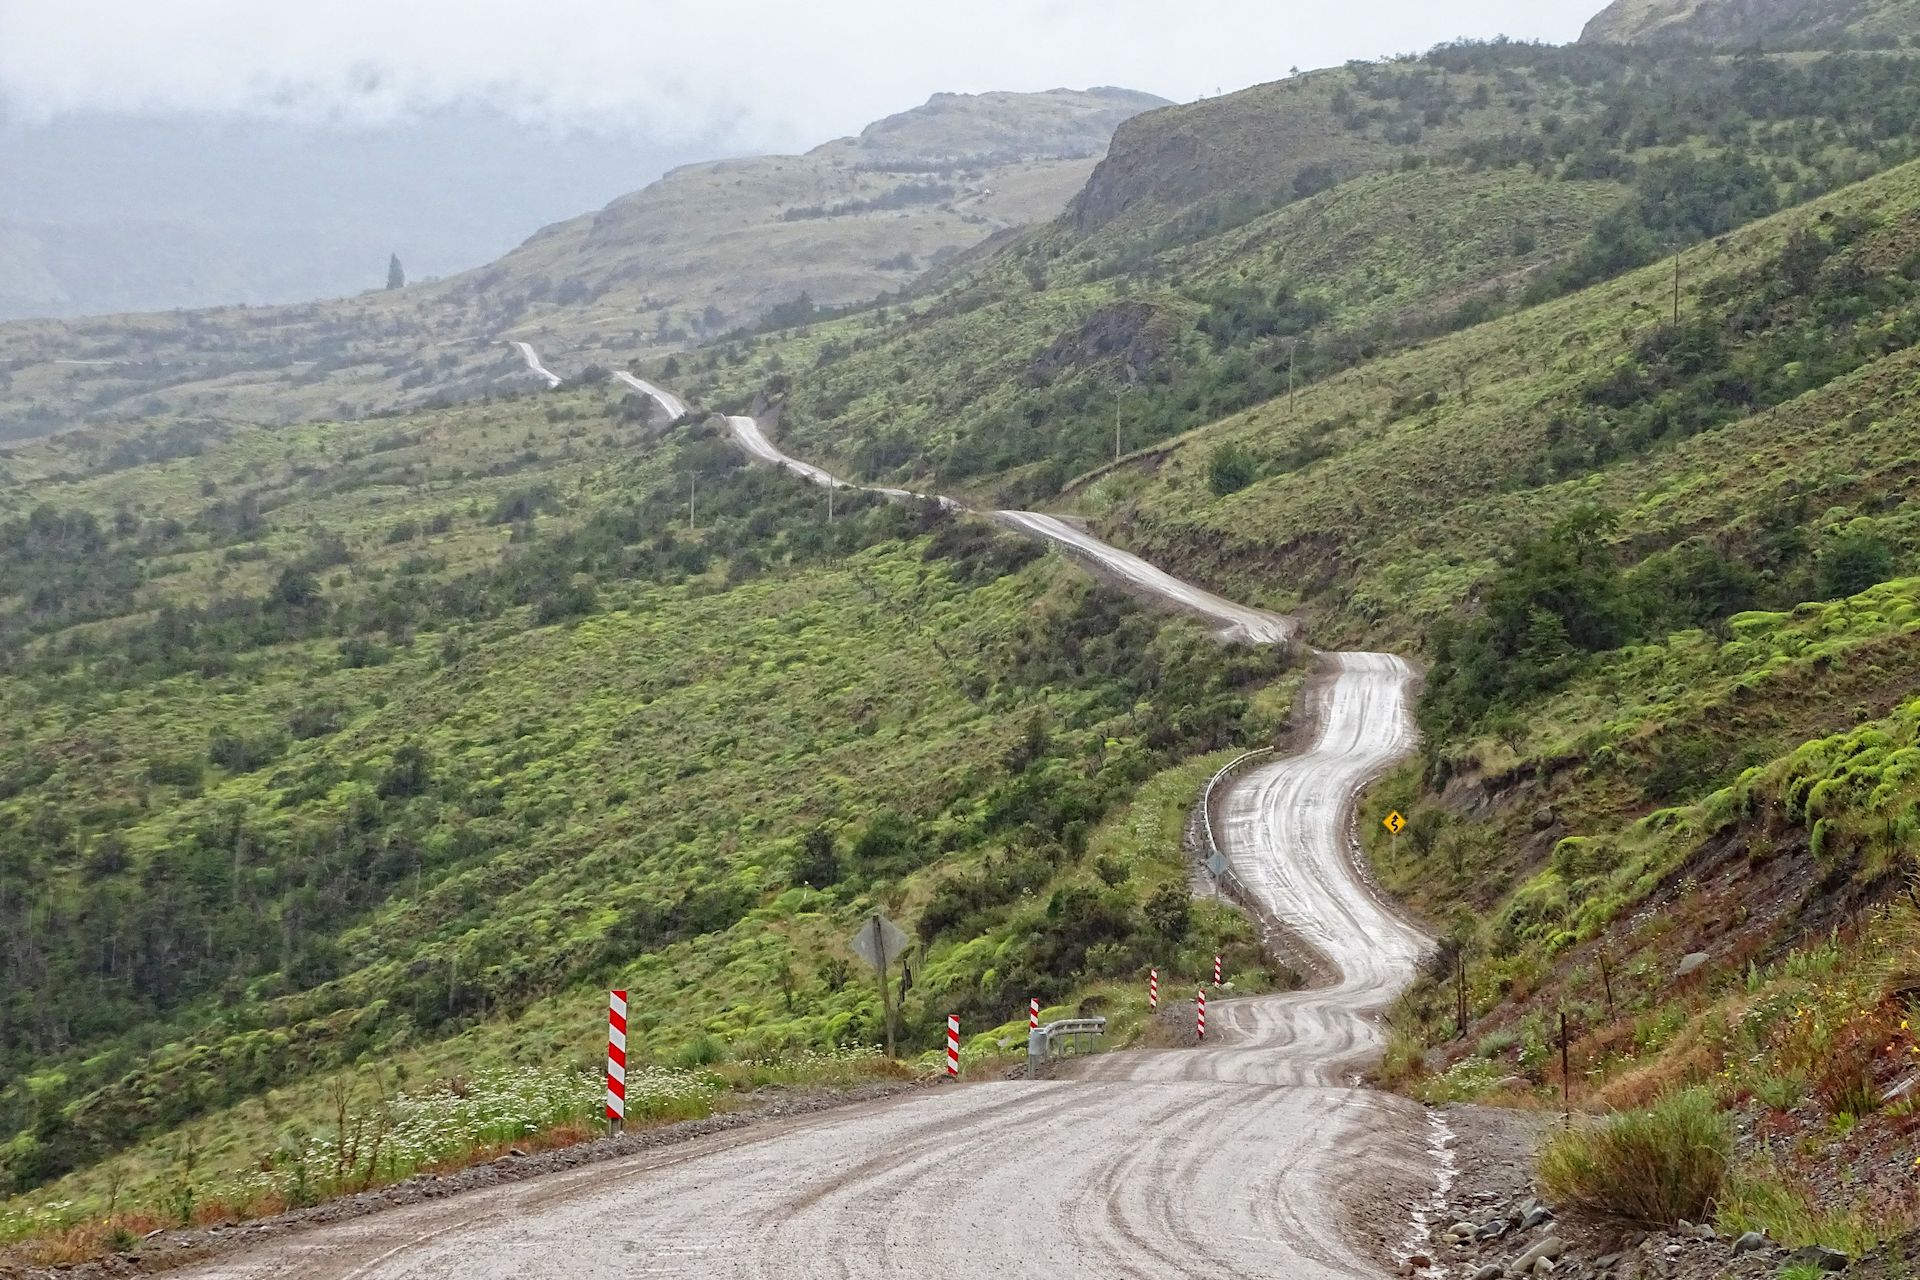 Carretera Austral – The Way South